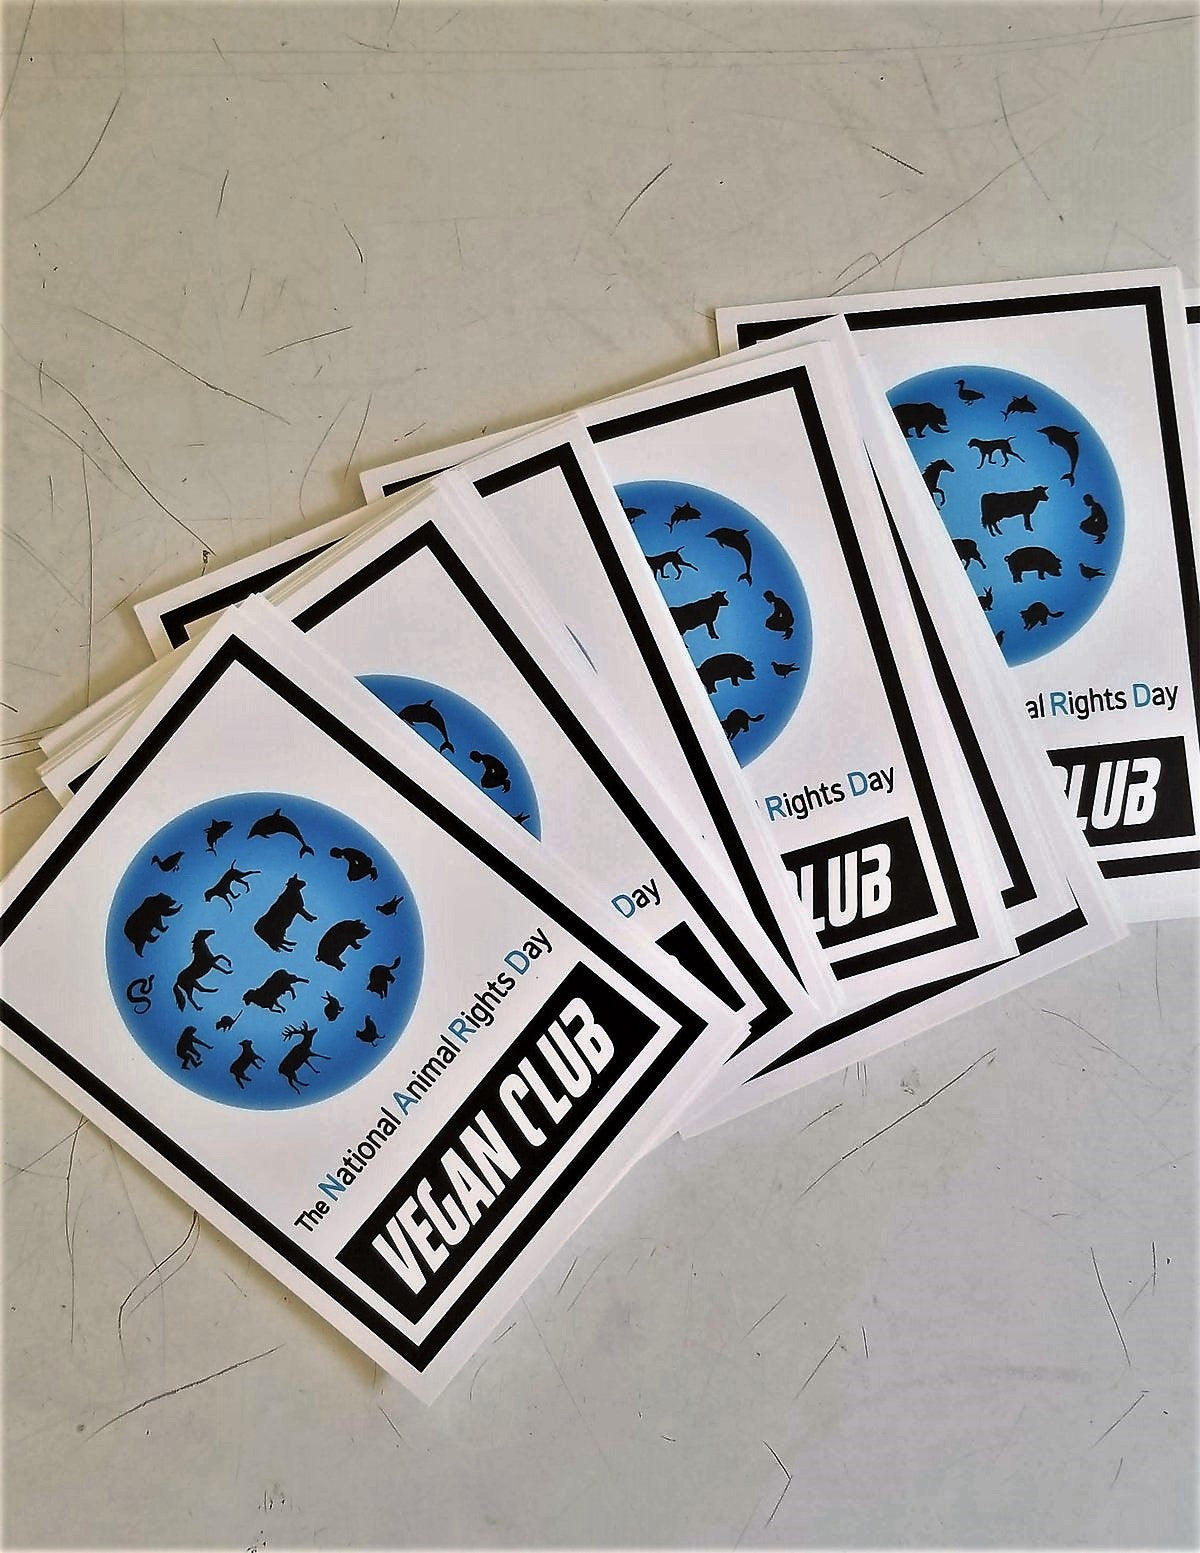 SOLD OUT - 12 Vegan Club NARD National Animal Rights Day Stickers